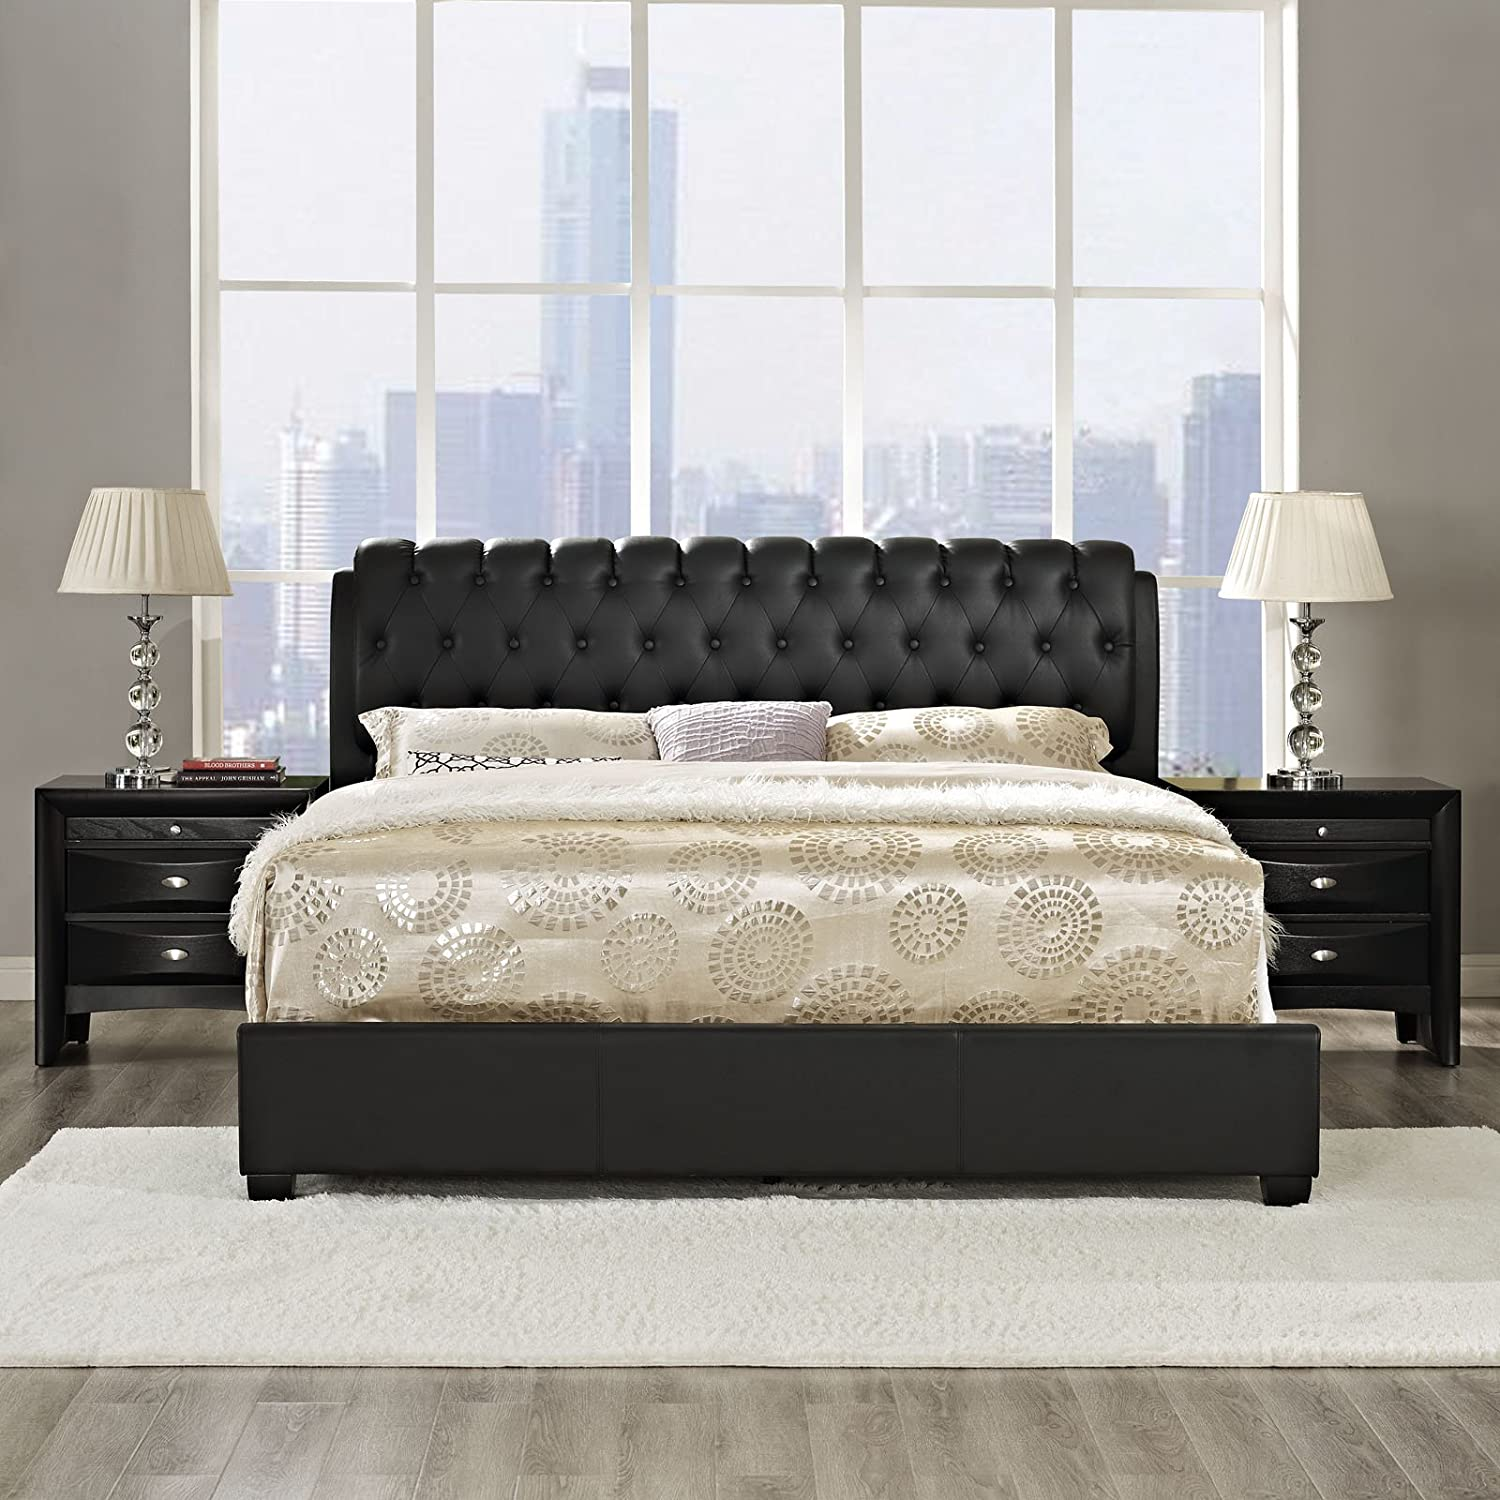 Amazon Modway Francesca 3 Piece Queen Bedroom Set in Black